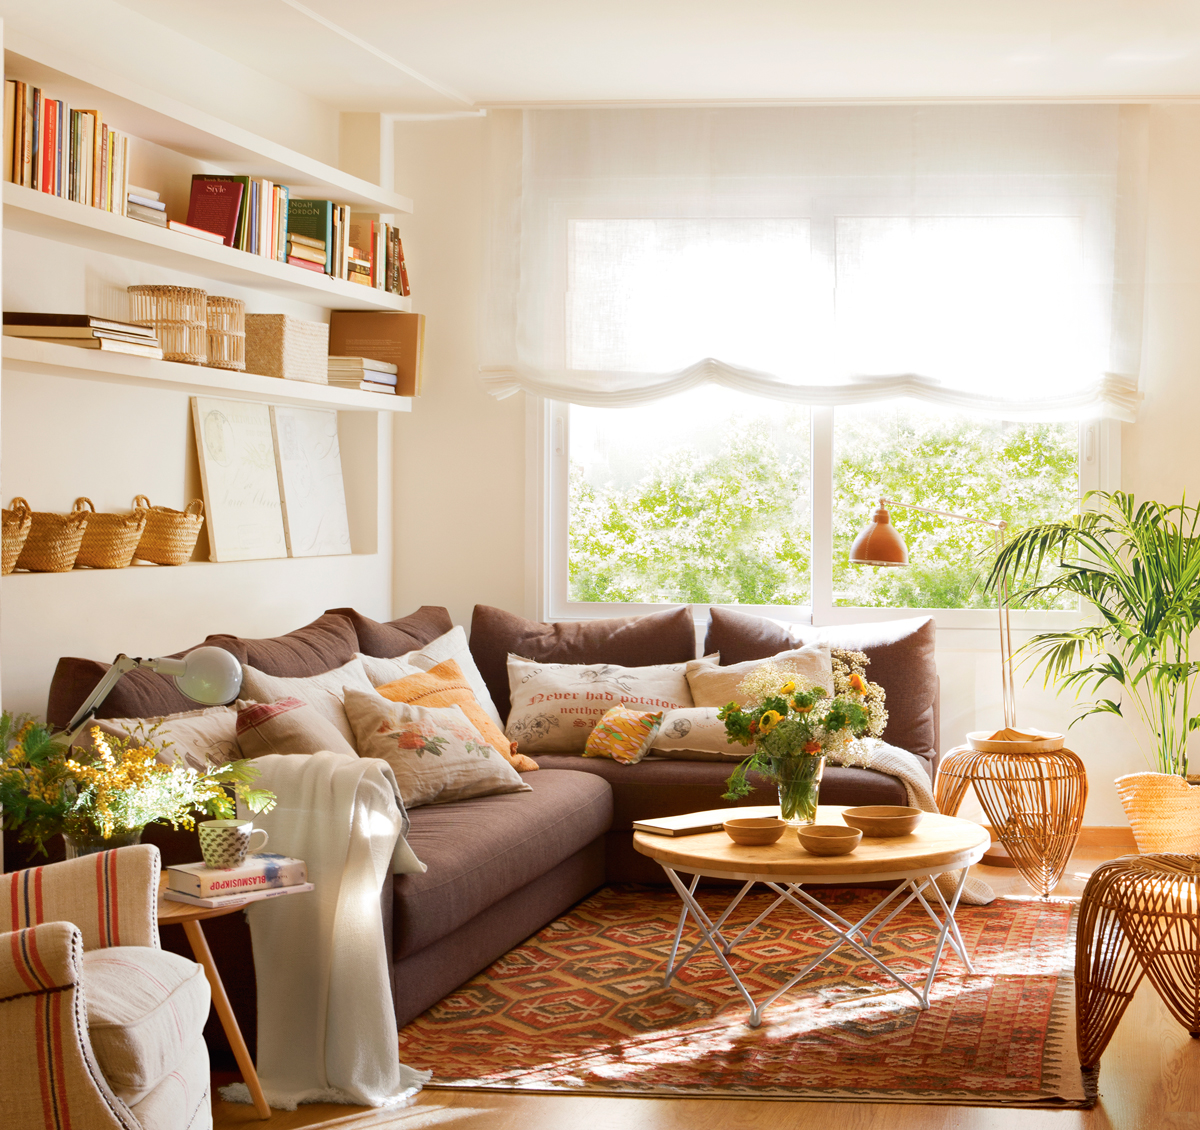 10 ideas geniales para salones peque os for Decoracion salones modernos pequenos